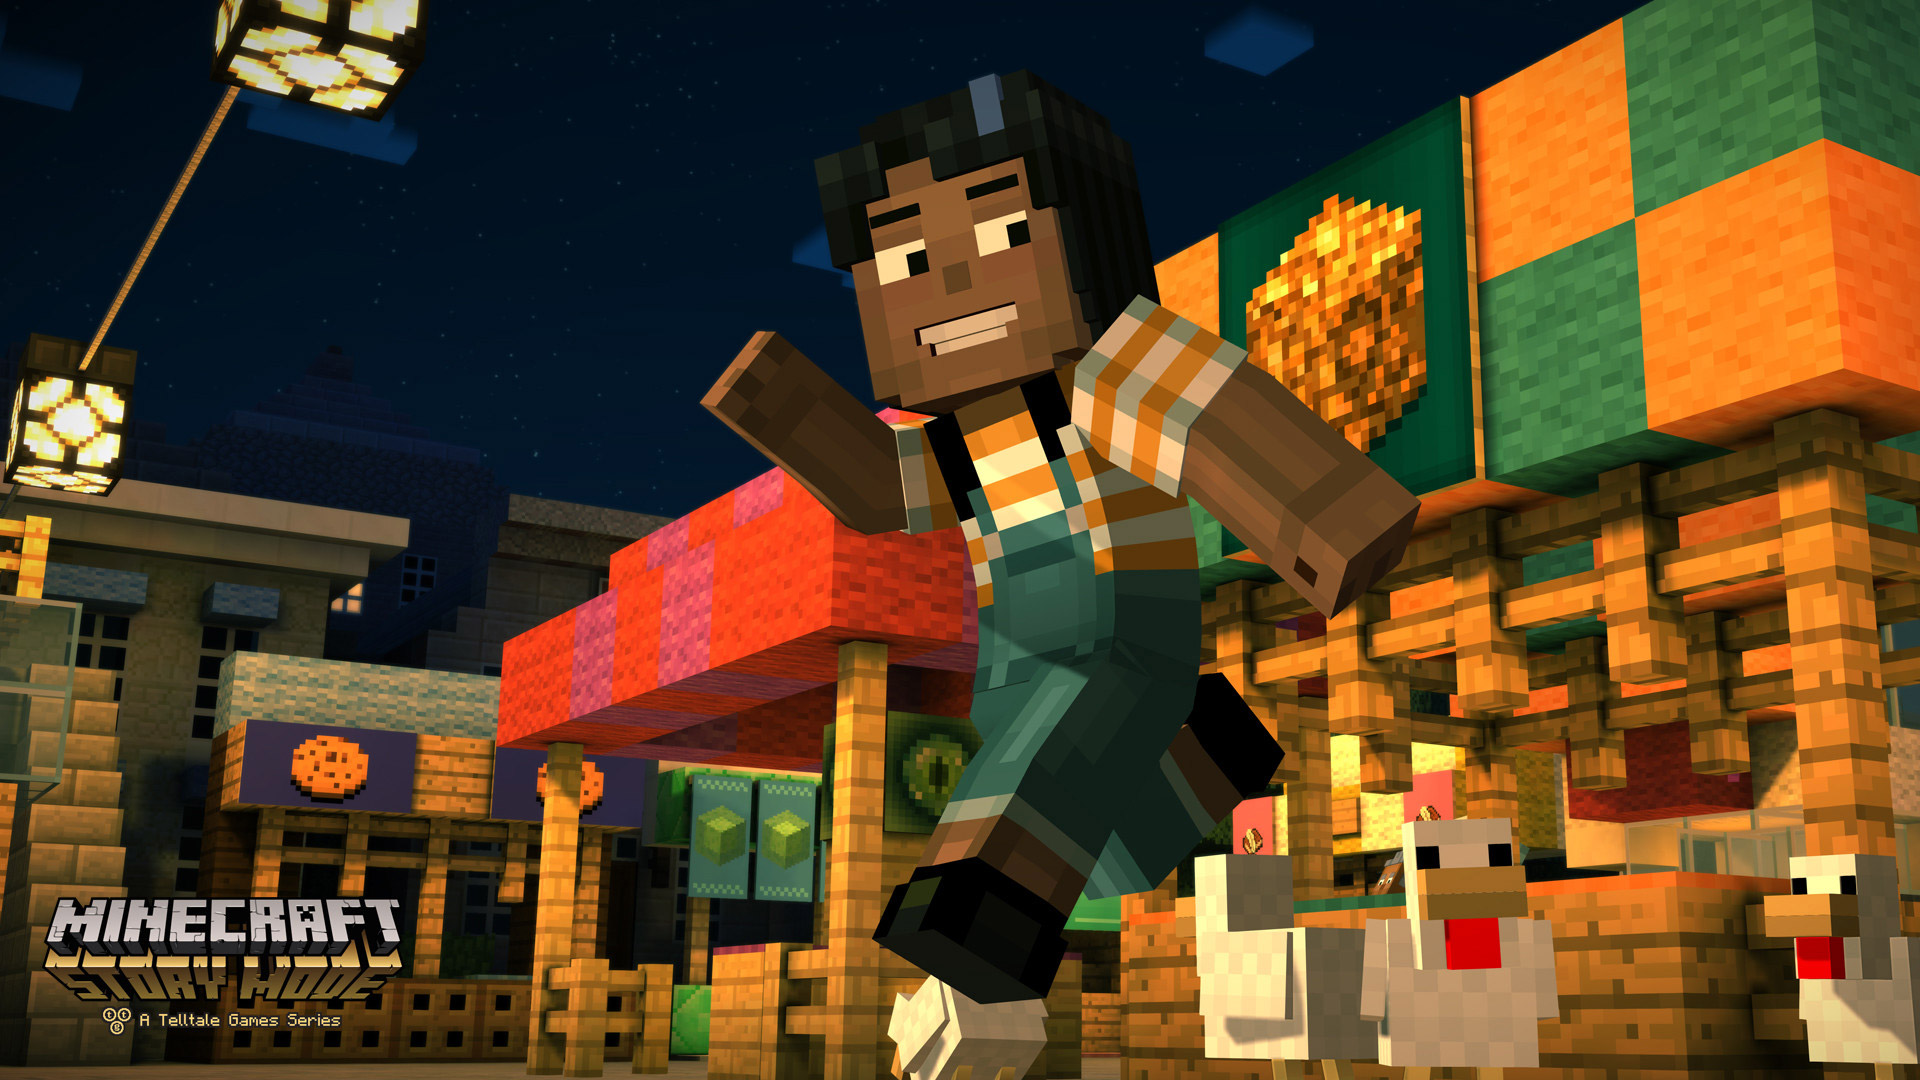 Minecraft: Story Mode Wallpaper in 1920x1080